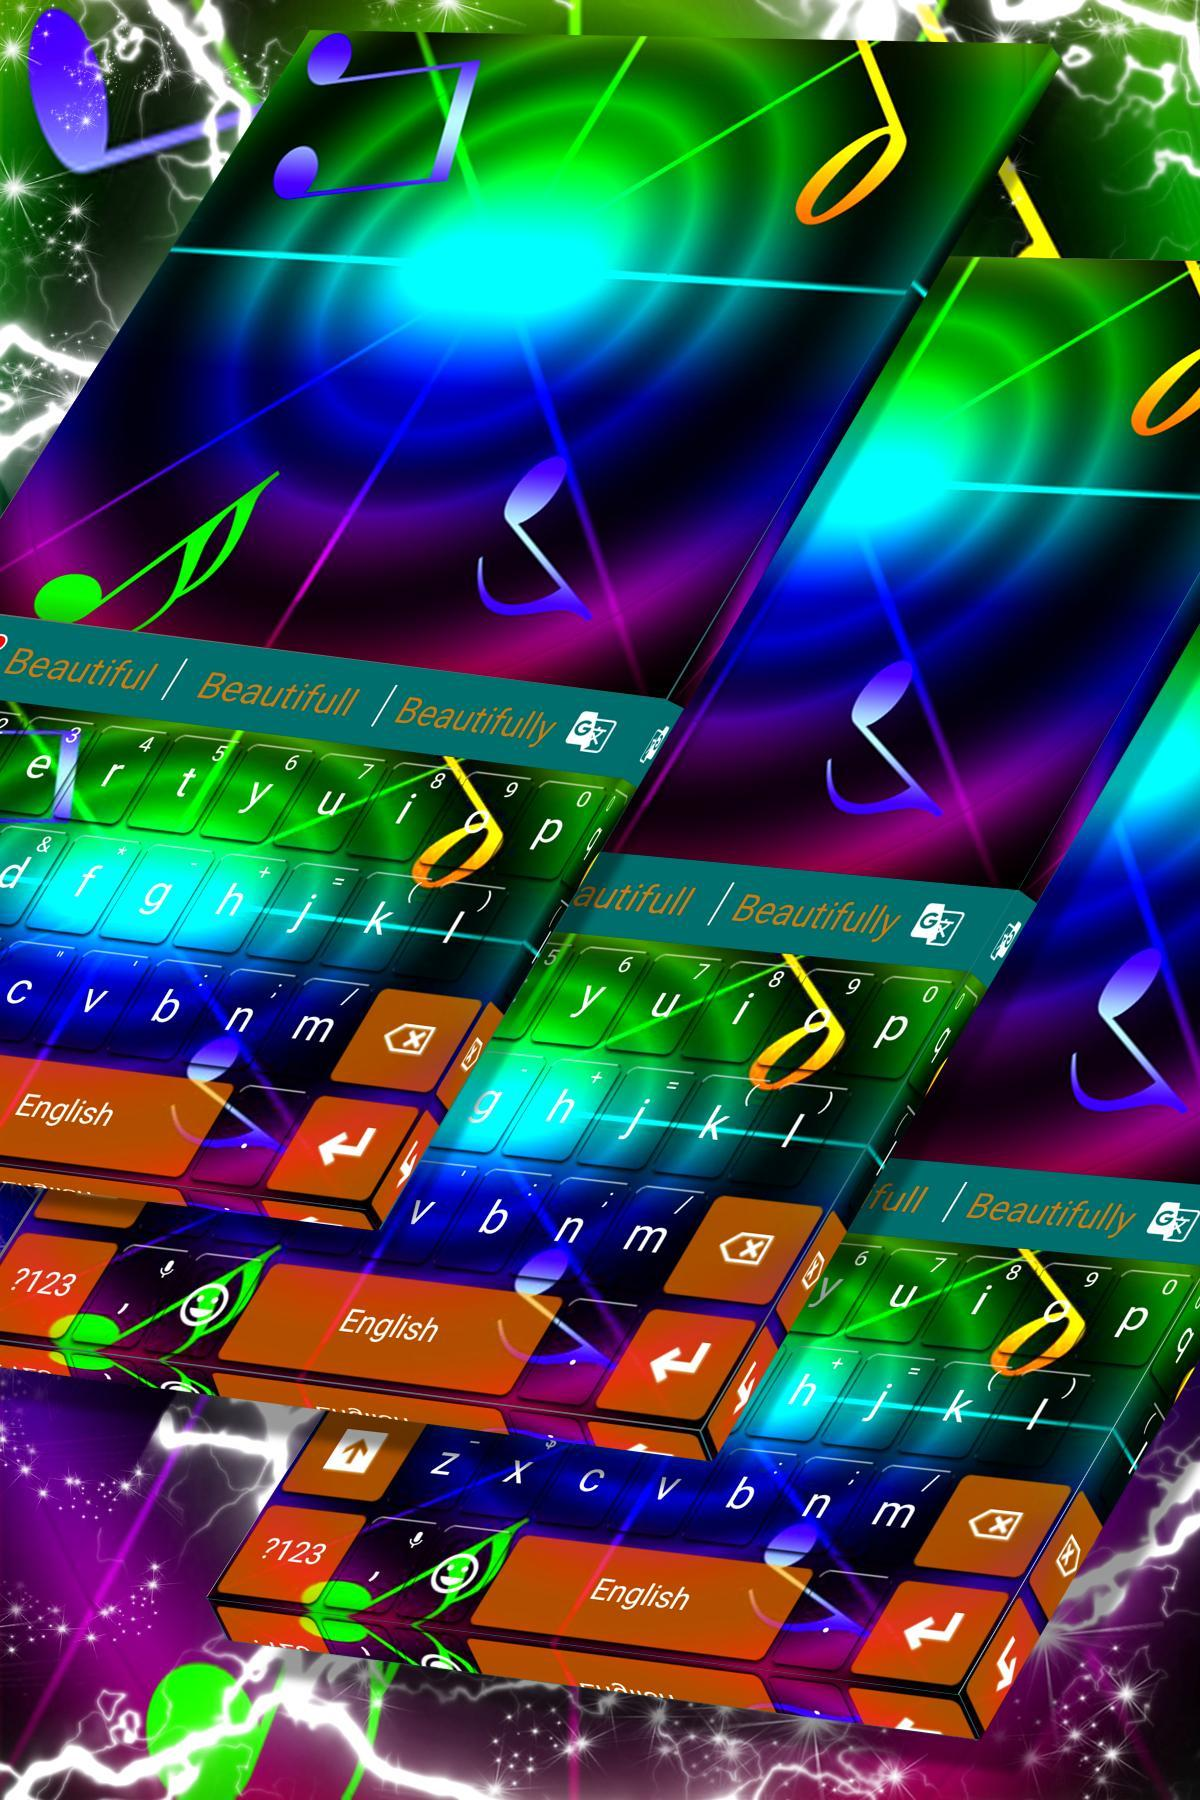 Keyboard With Sound Effects for Android - APK Download